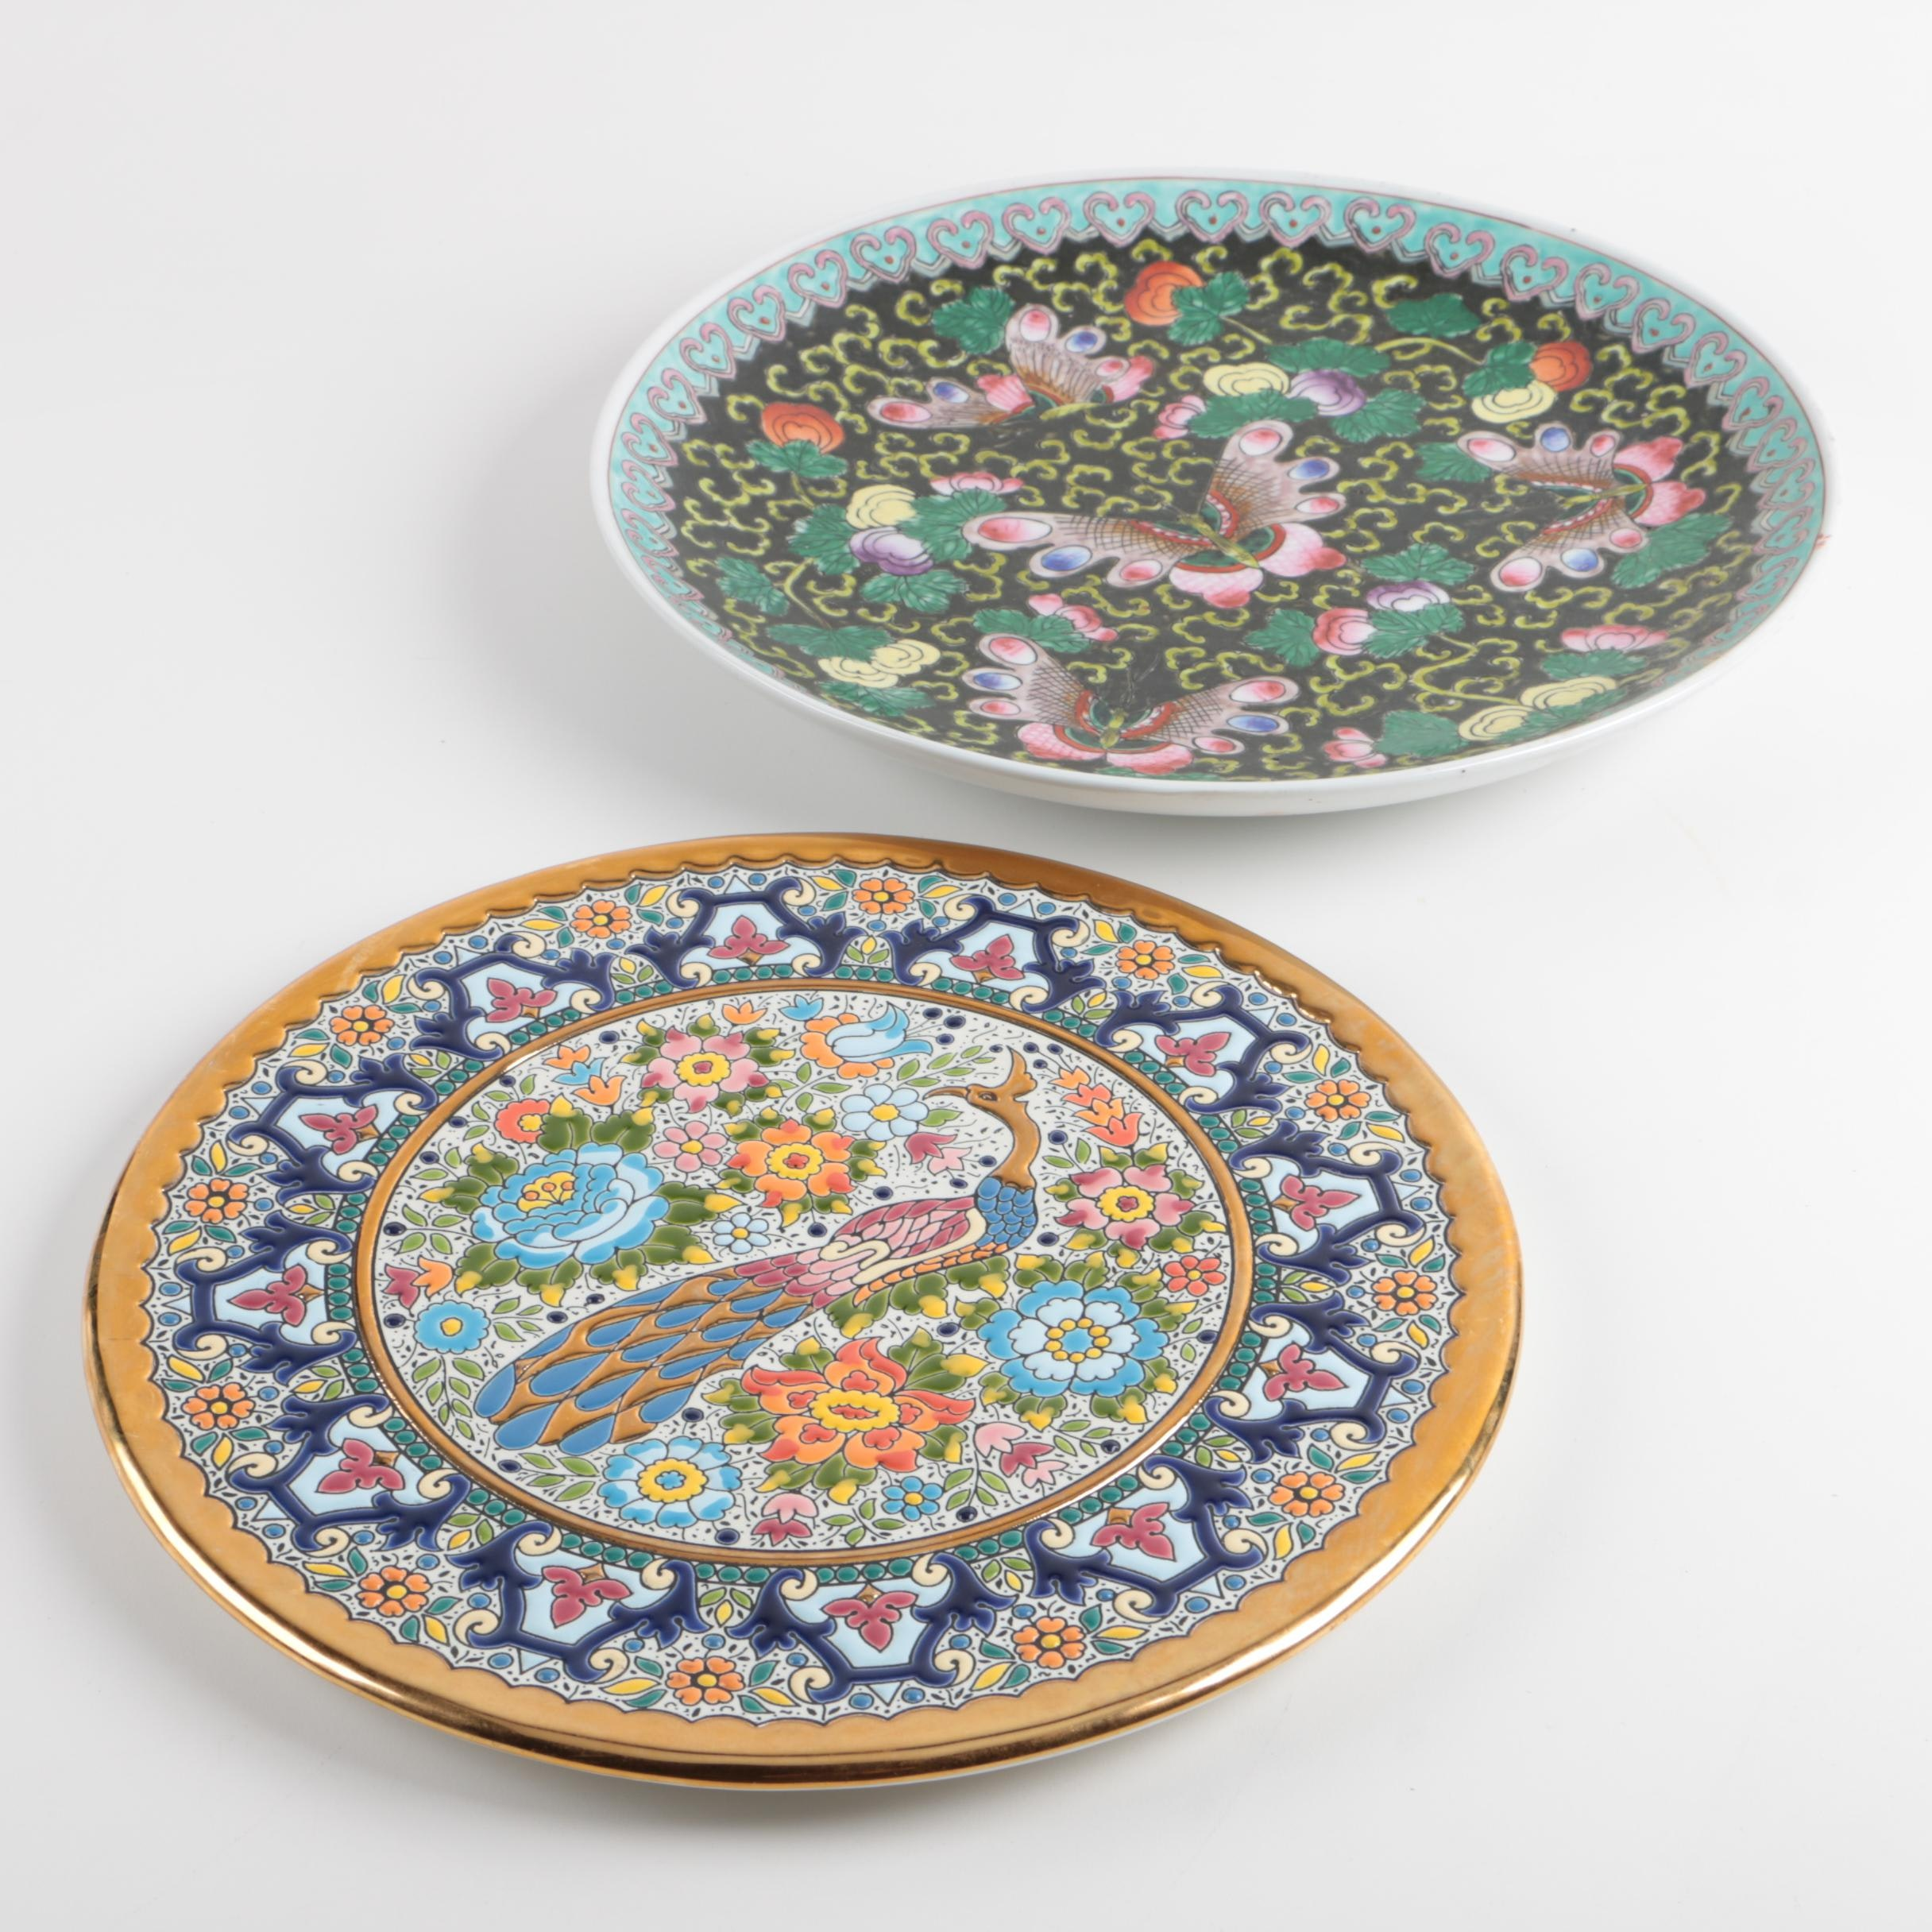 Cearco Spanish and Chinese Decorative Plates ...  sc 1 st  EBTH.com & Cearco Spanish and Chinese Decorative Plates : EBTH